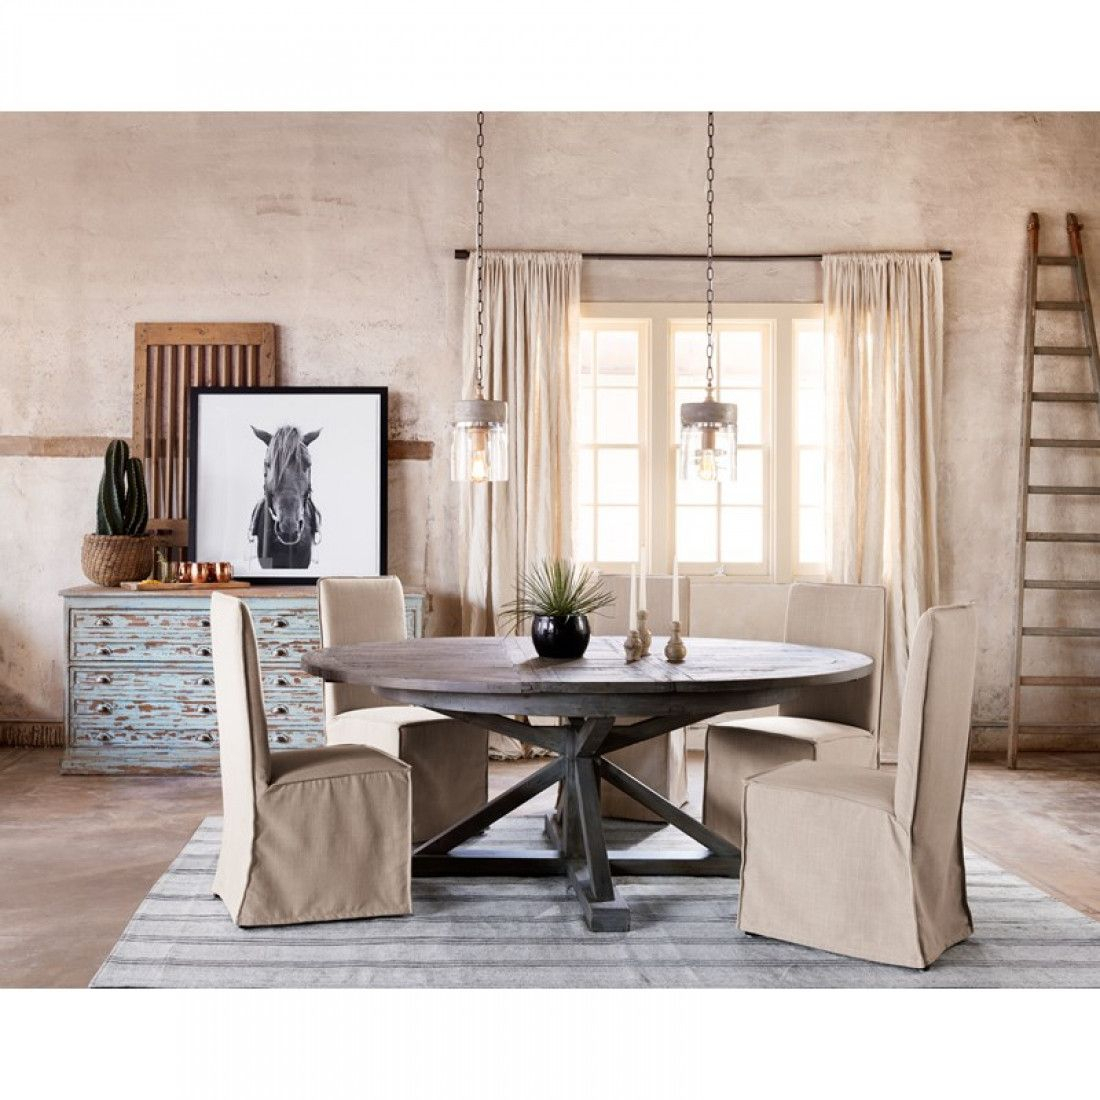 "Cintra Extension Dining Table: 63 79"" Black Olive Throughout Current Driftwood White Hart Reclaimed Pedestal Extending Dining Tables (Image 2 of 25)"